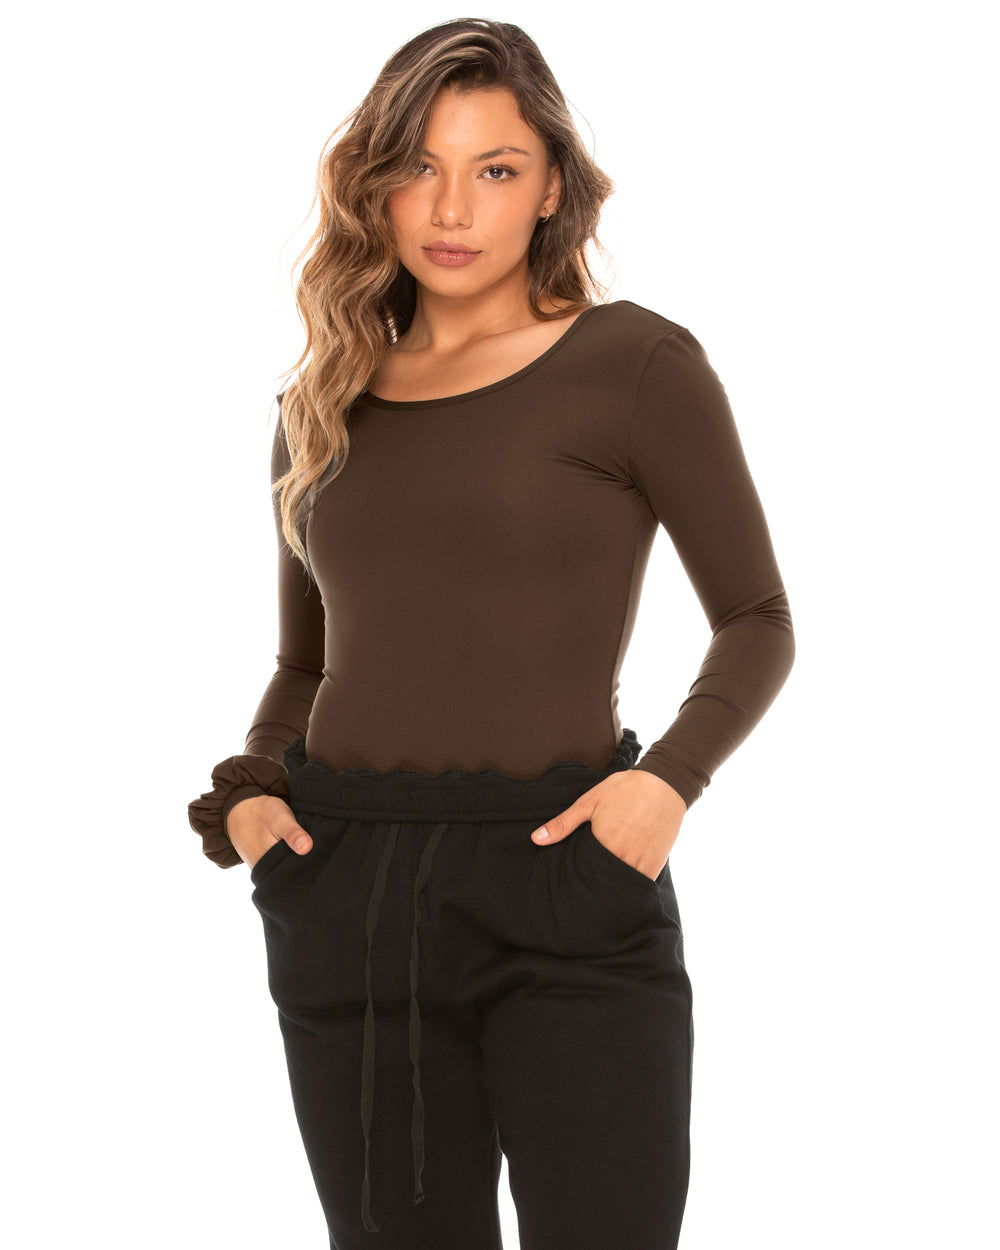 Scoop Back Long-Sleeve Bodysuit - Olive